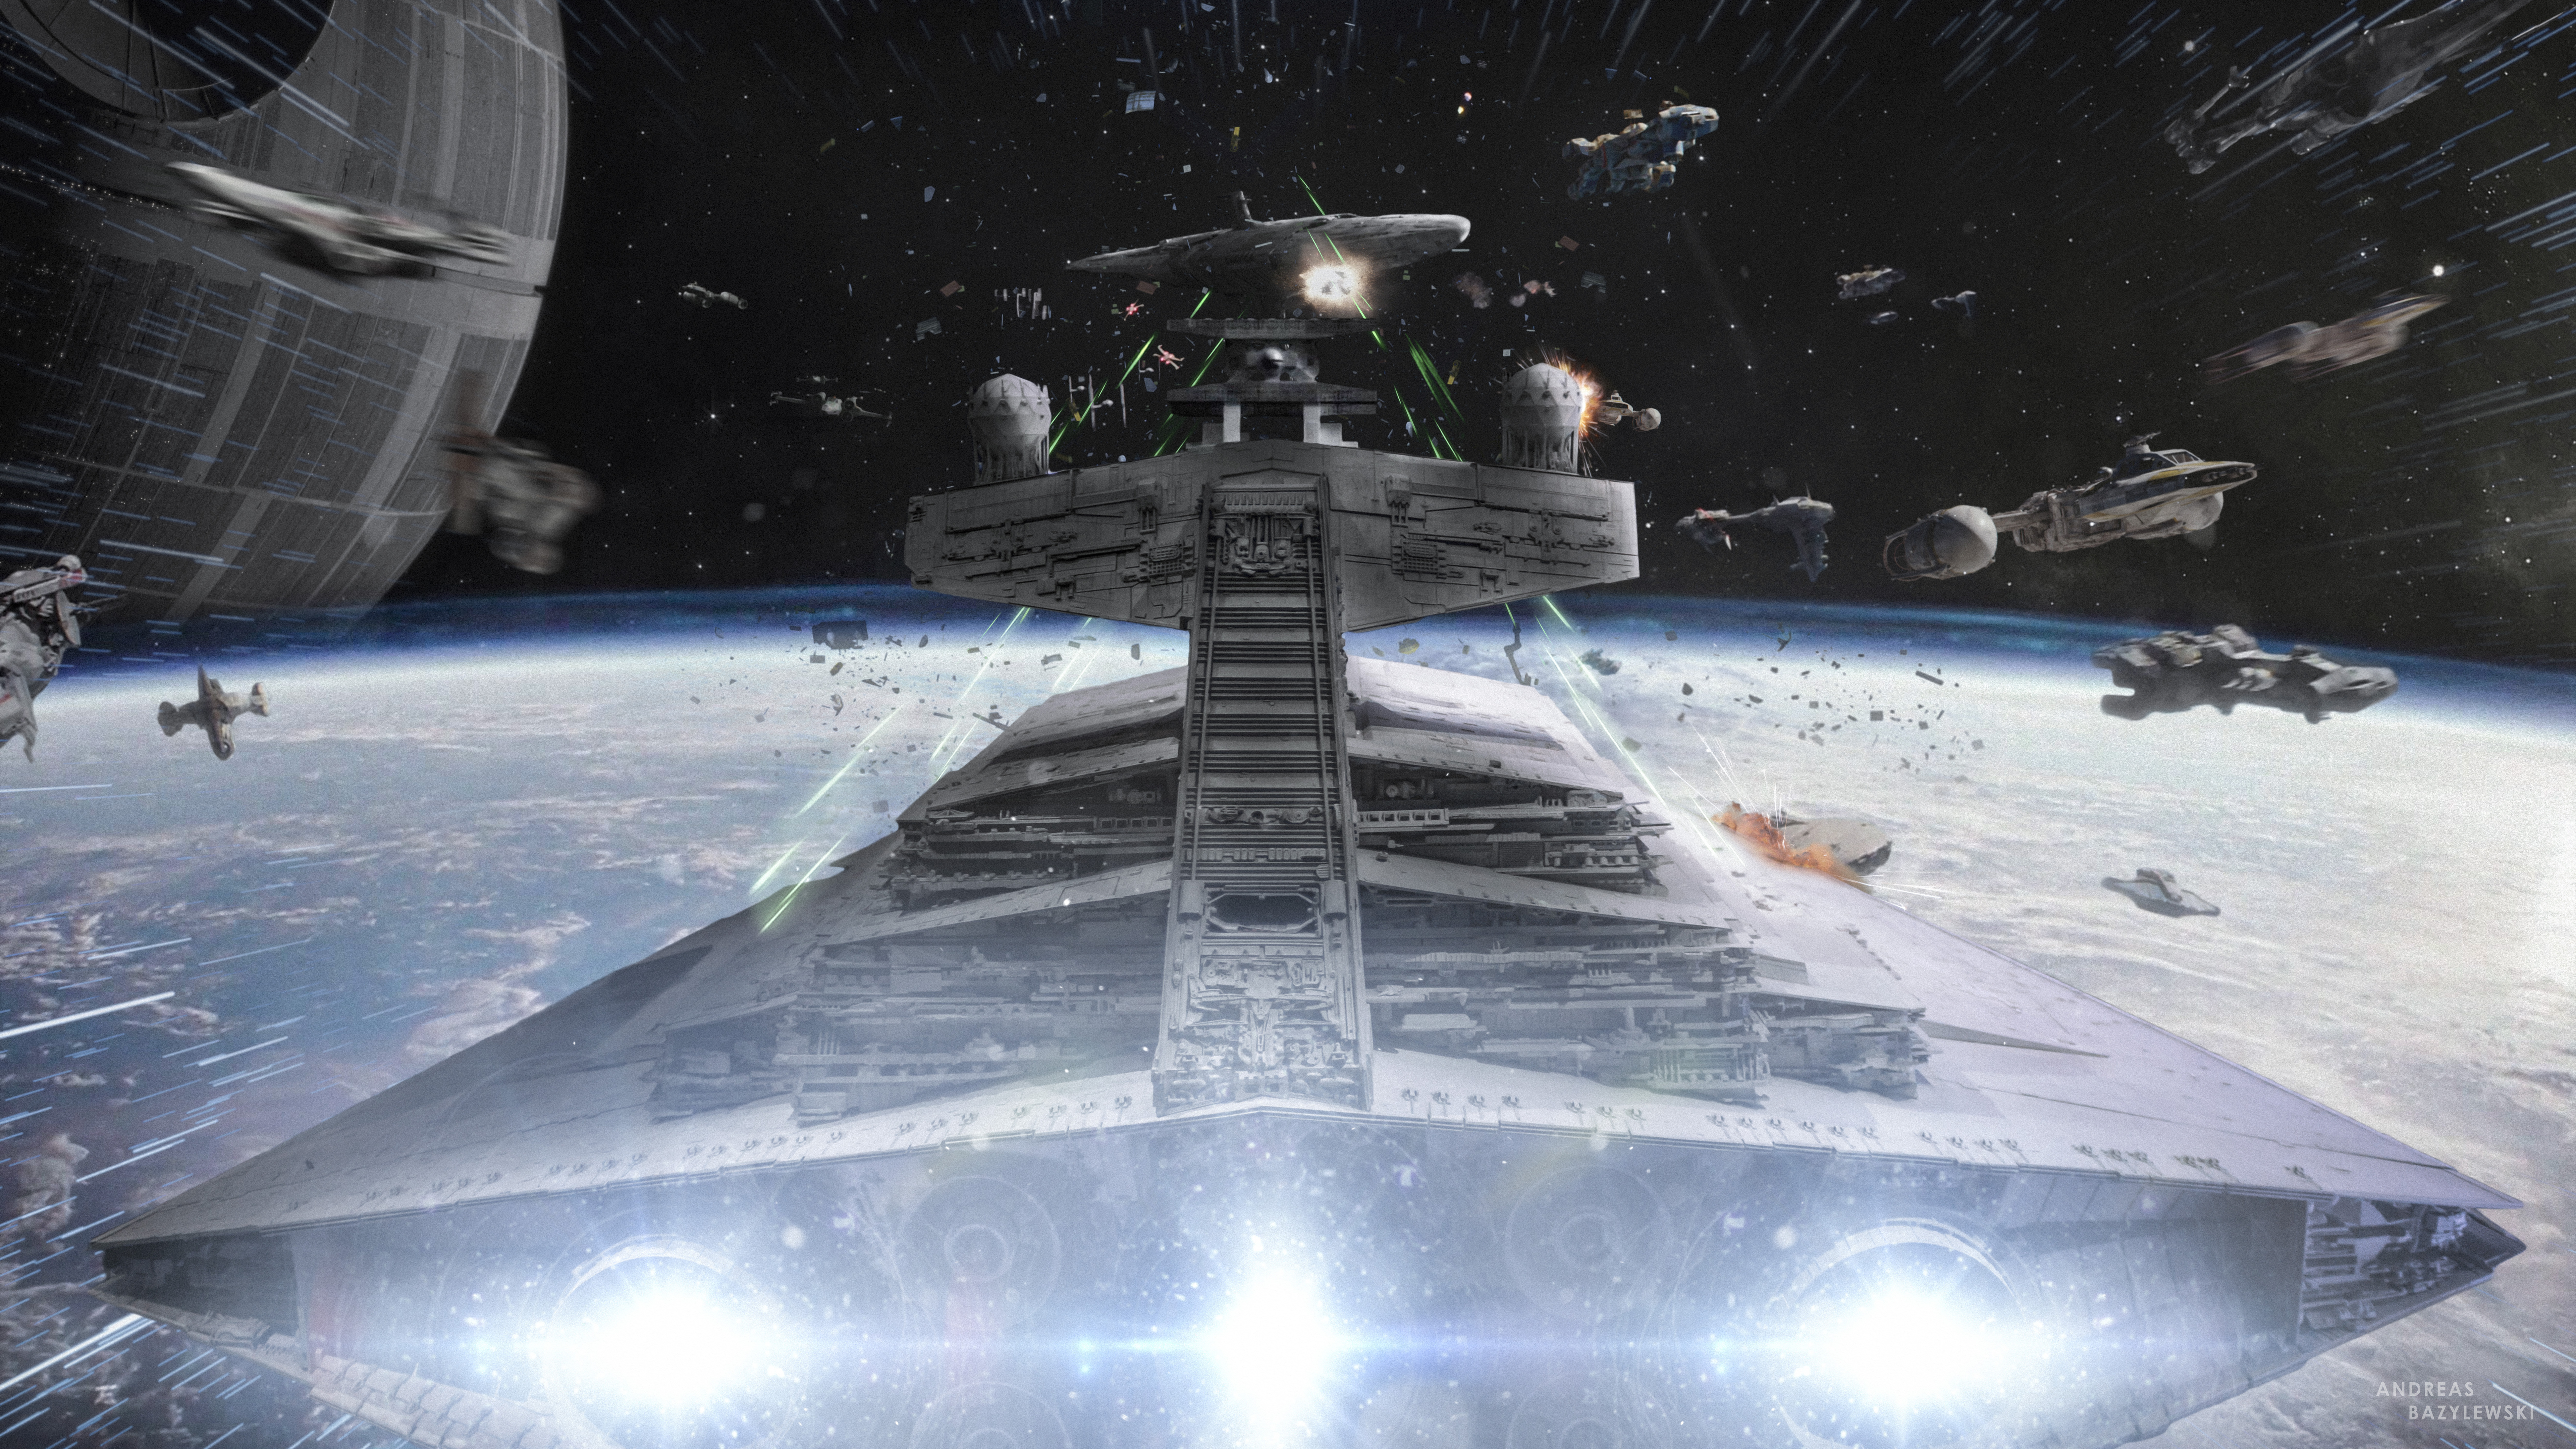 7680x4320 Star Wars Devastator Ship 8k Hd 4k Wallpapers Images Backgrounds Photos And Pictures